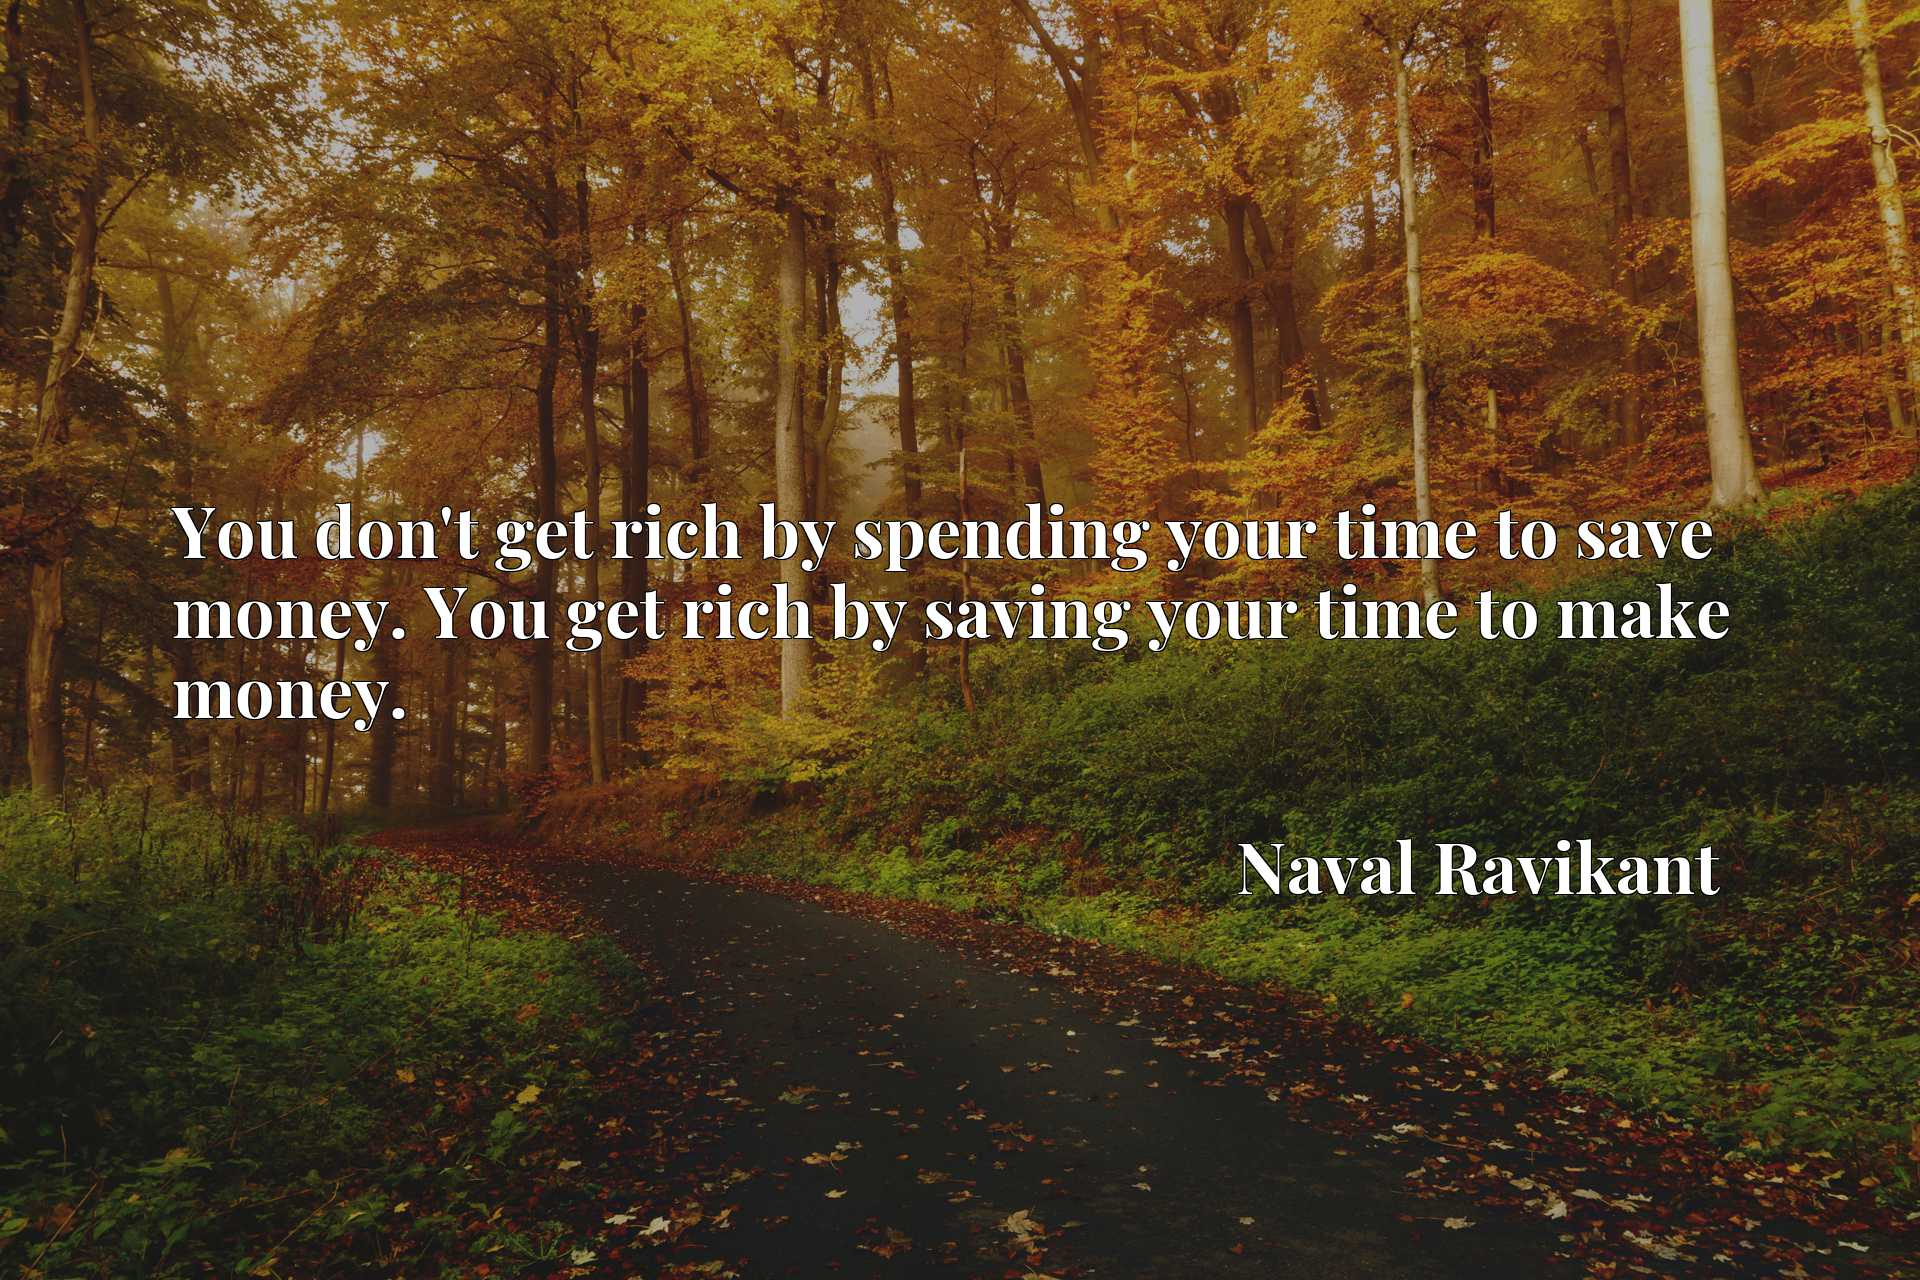 You don't get rich by spending your time to save money. You get rich by saving your time to make money.